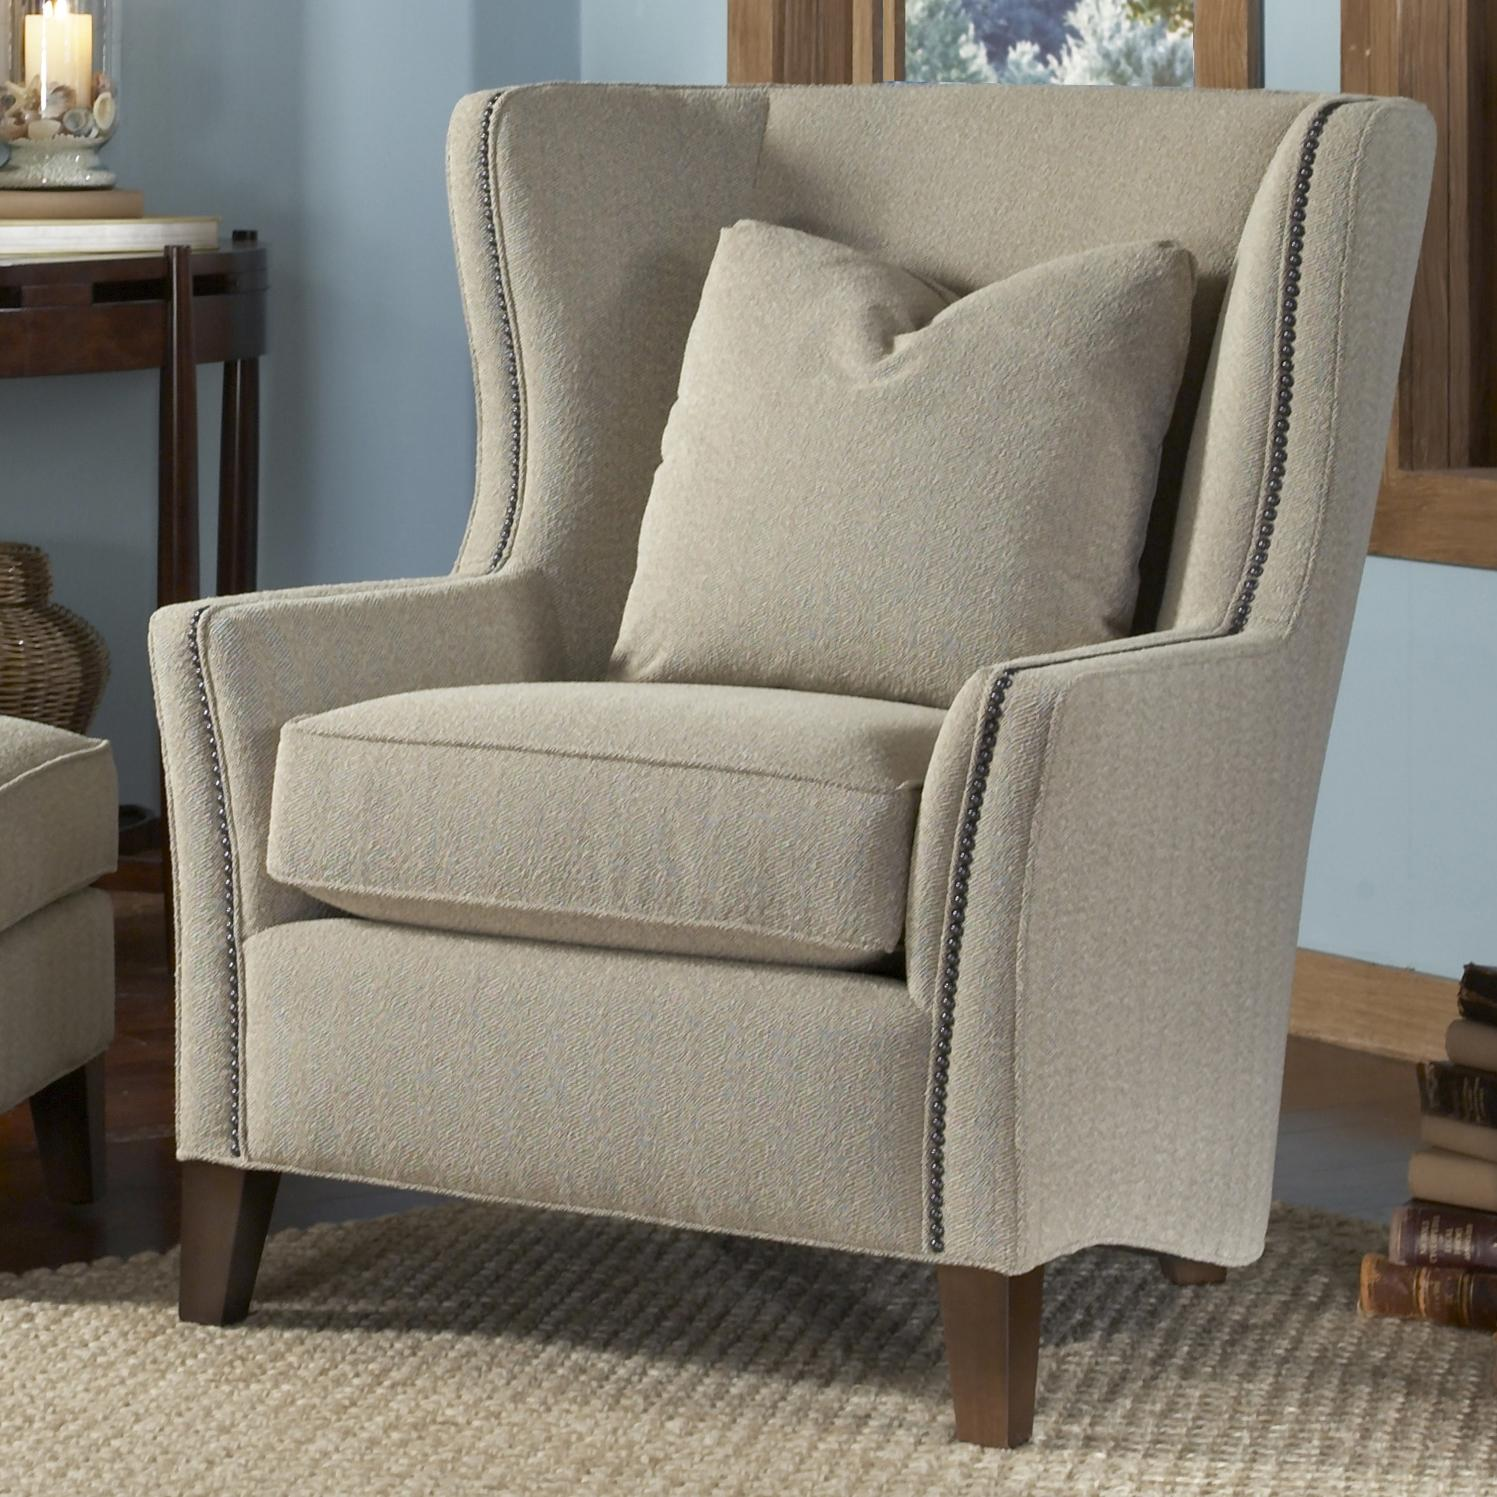 Wing chair with ottoman - Wingback Chair And Ottoman